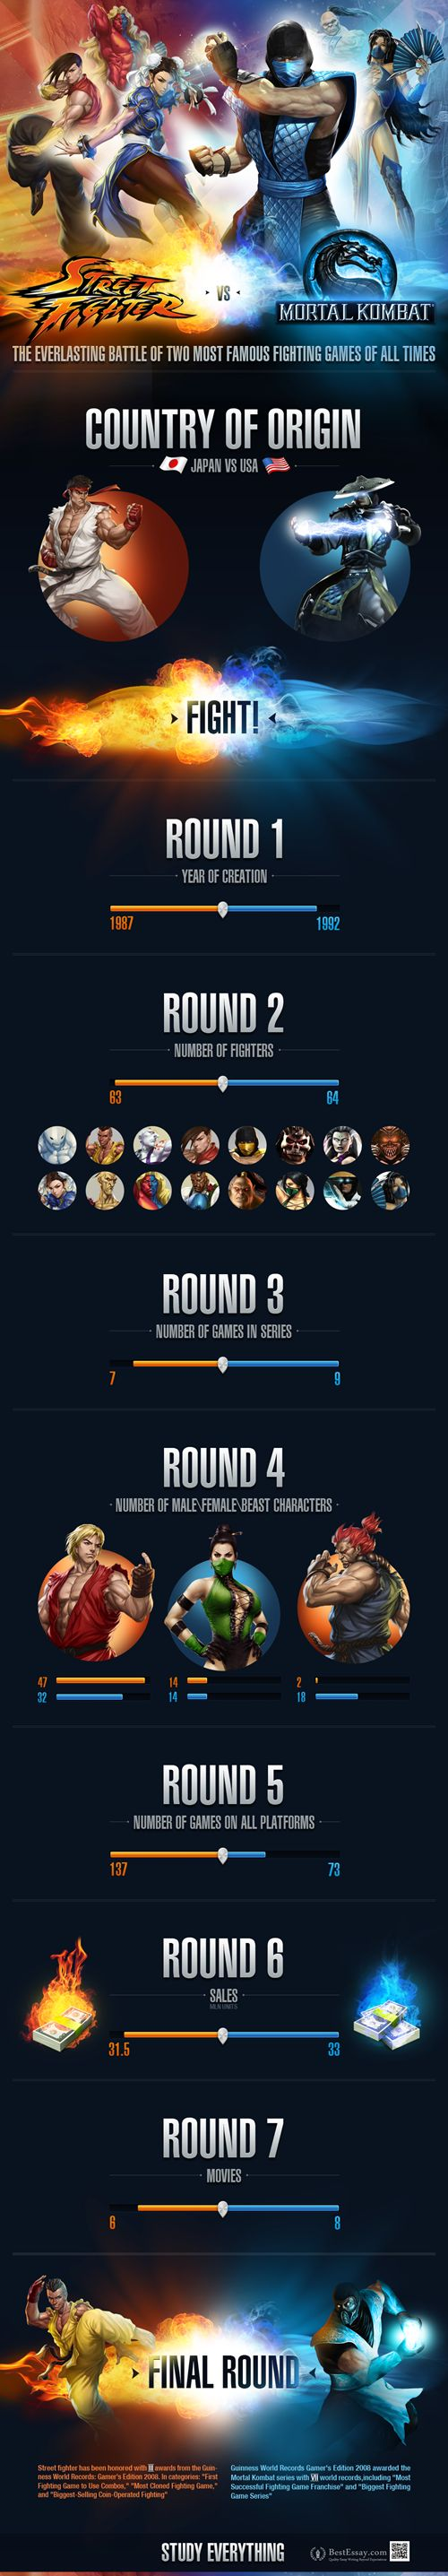 Street Fight vs Mortal Kombat | Visit our new infographic gallery at visualoop.com/